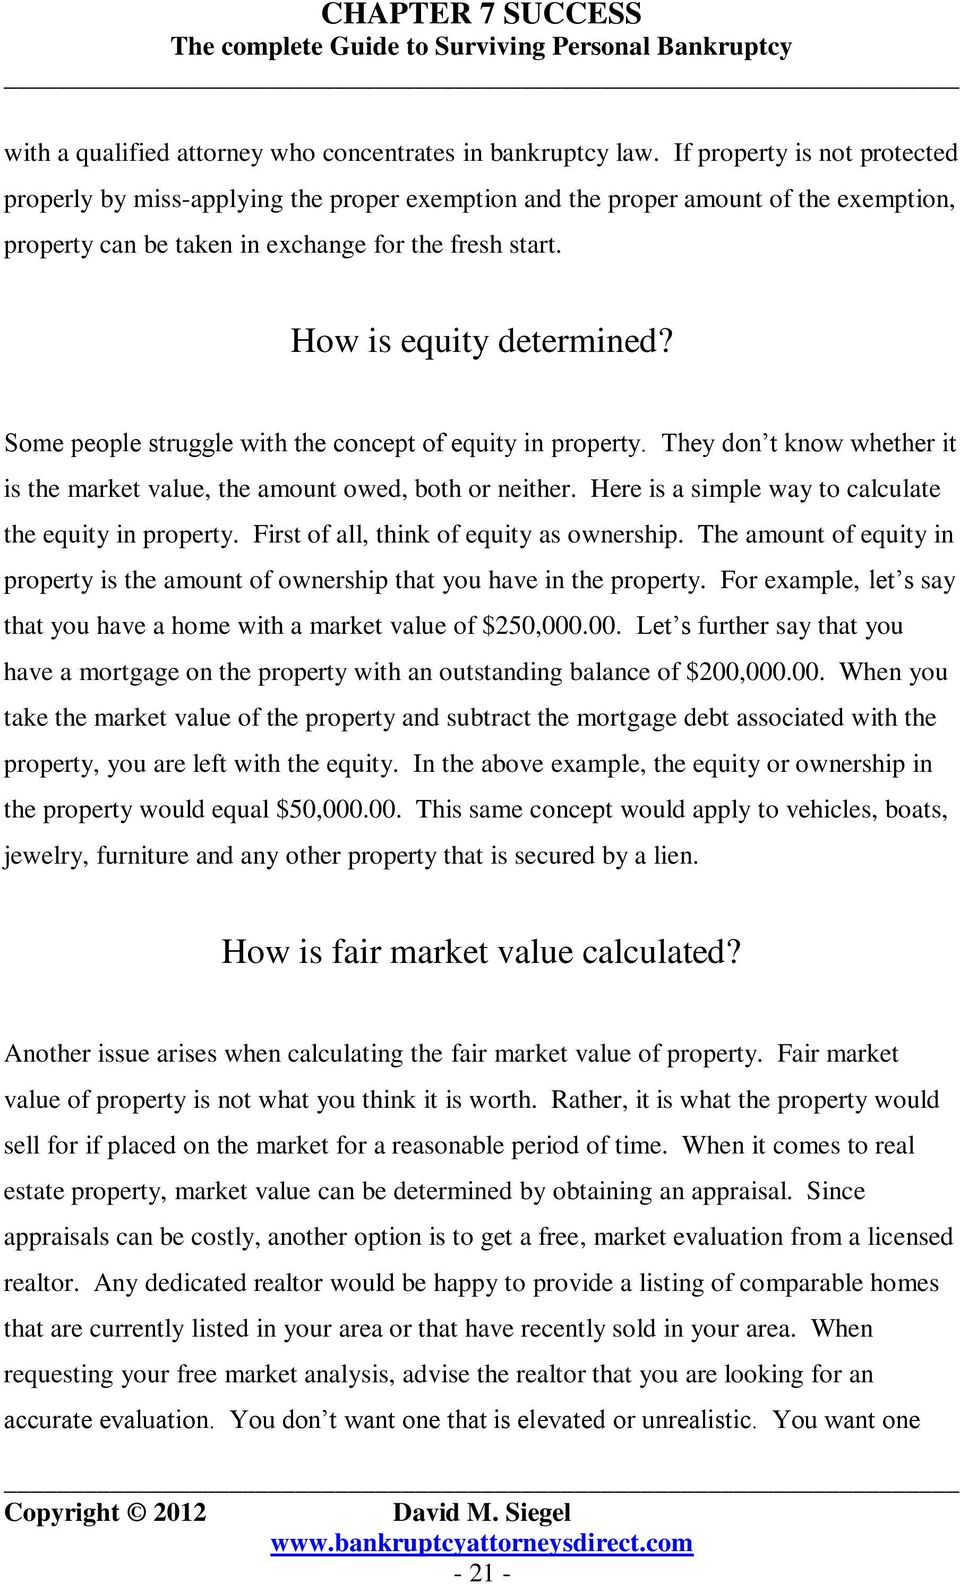 Some people struggle with the concept of equity in property. They don t know whether it is the market value, the amount owed, both or neither. Here is a simple way to calculate the equity in property.